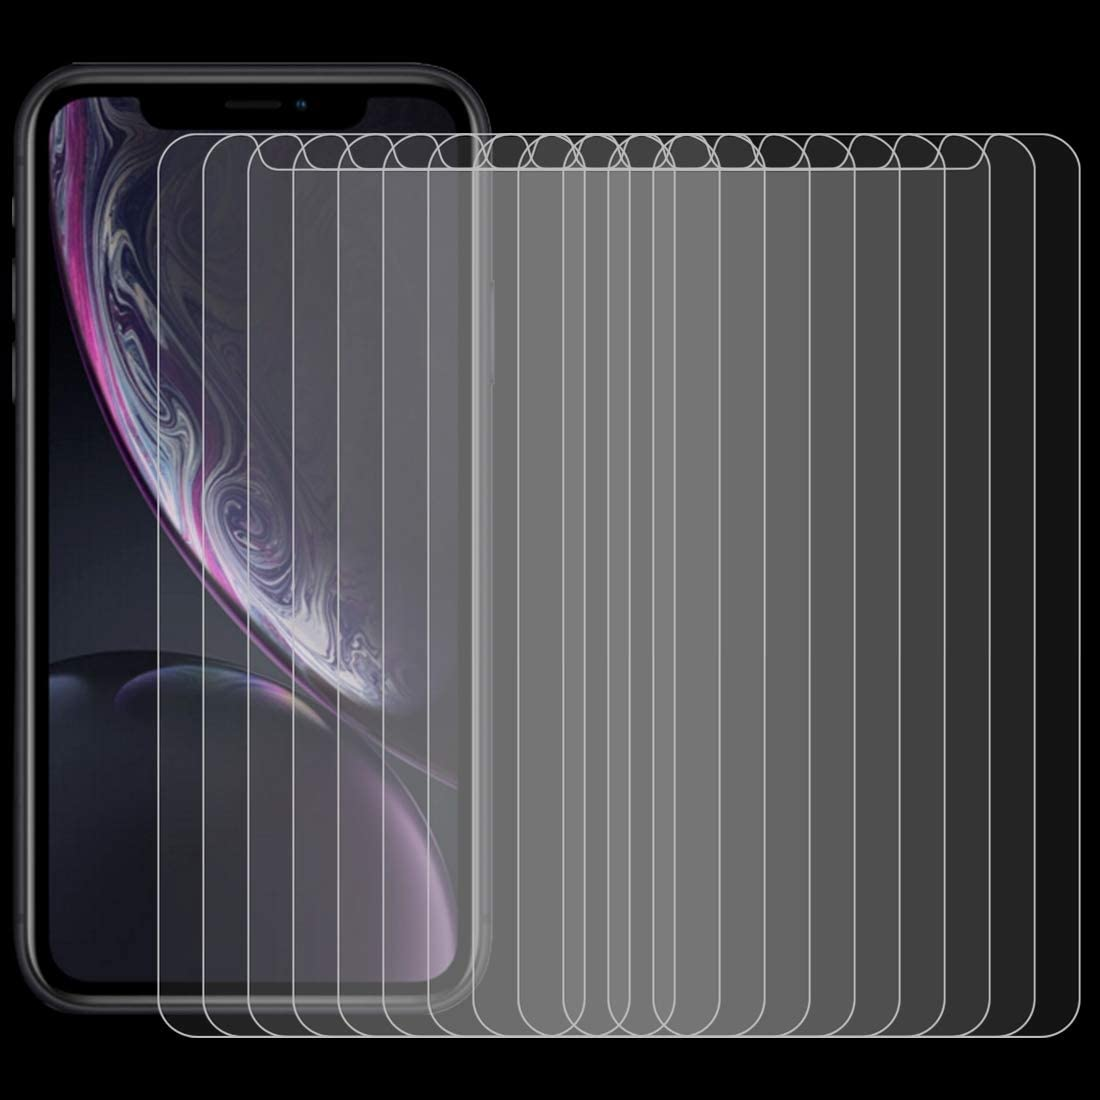 CHENNAN 100 PCS 0.26mm 9H 2.5D Tempered Glass Film for iPhone XR Glass Phone Screen Protectors